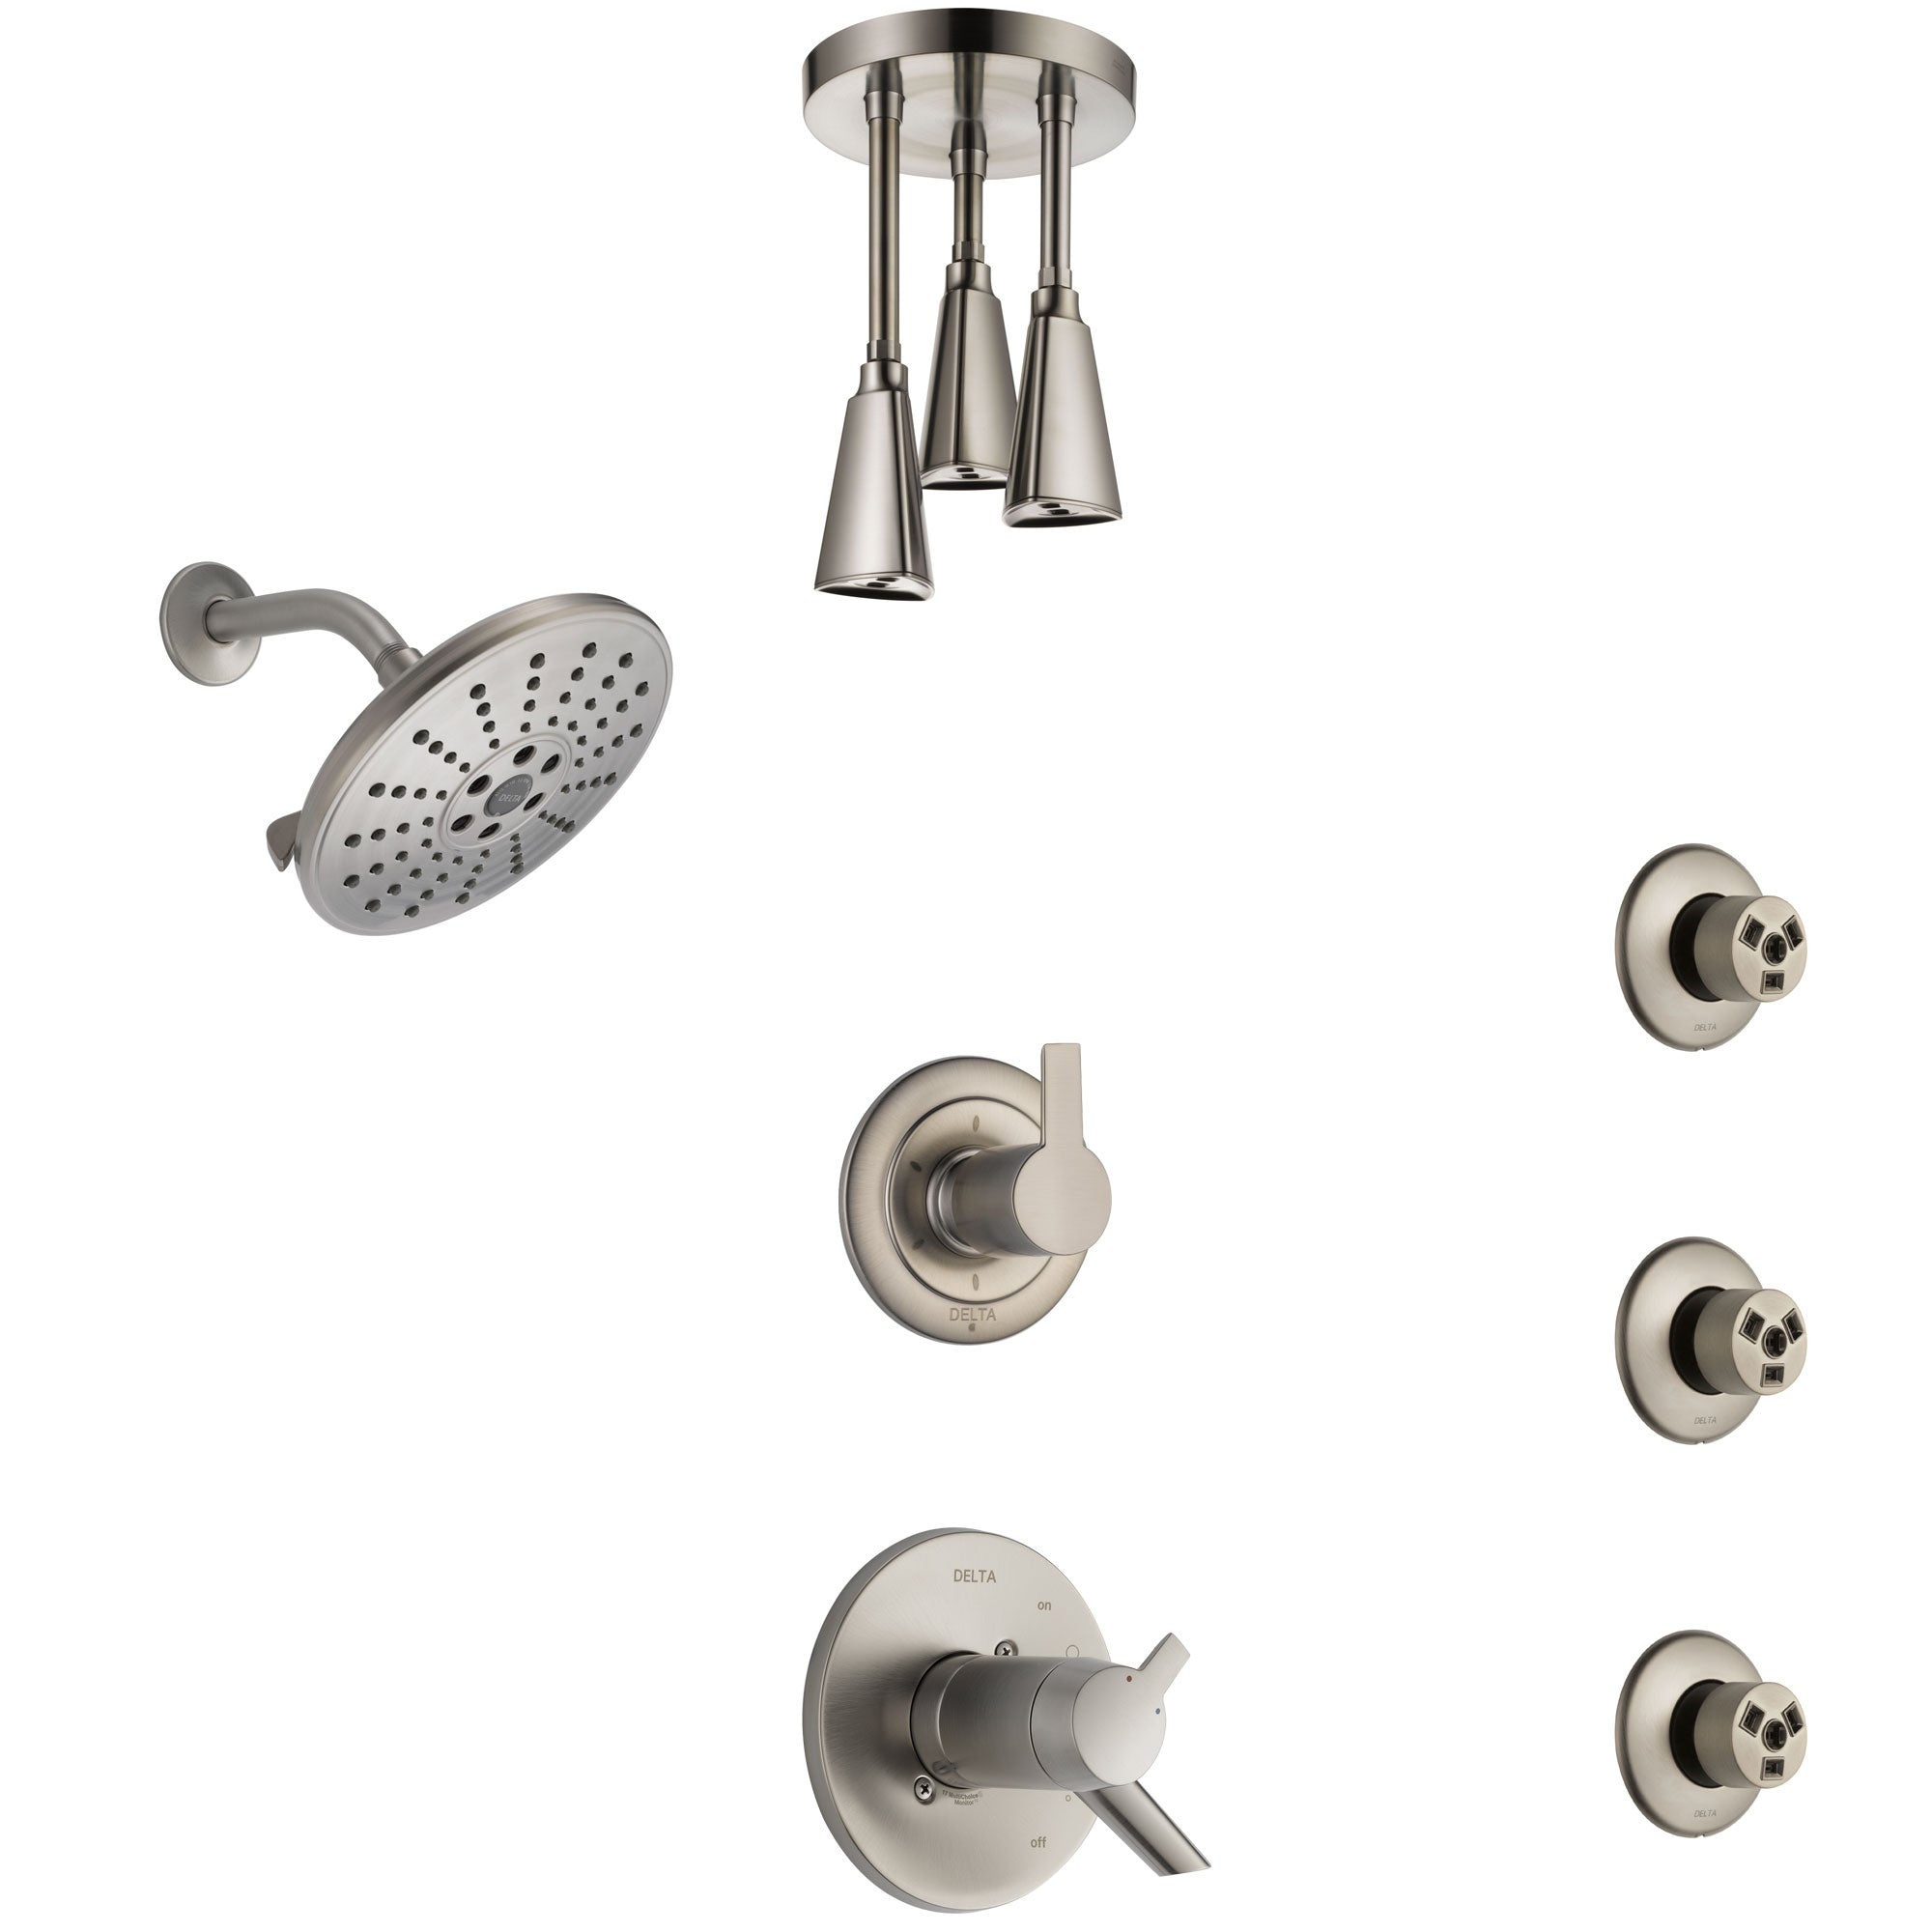 Delta Compel Dual Thermostatic Control Stainless Steel Finish Shower System, Diverter, Showerhead, Ceiling Showerhead, and 3 Body Sprays SS17T2612SS6